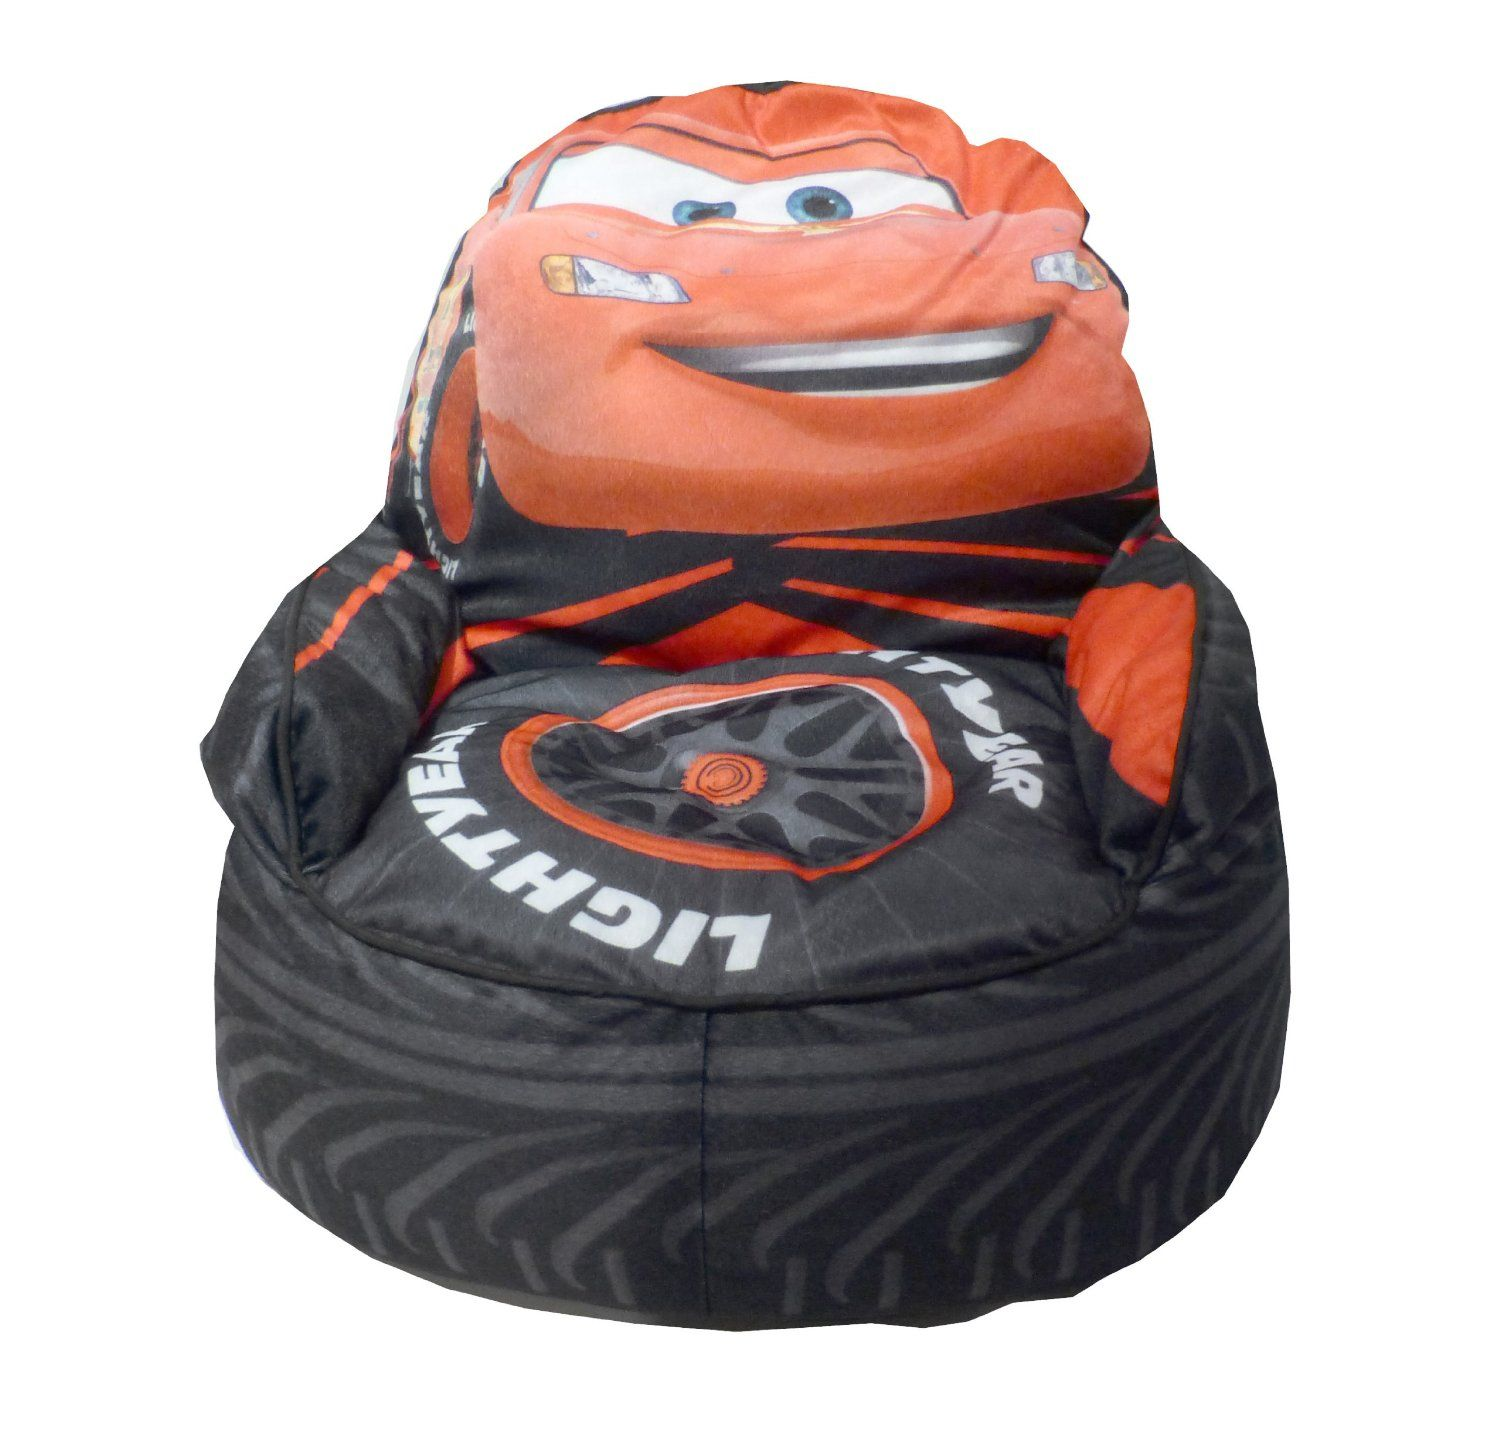 Disney Cars Bean Bag Chair Lightning McQueen Toddler